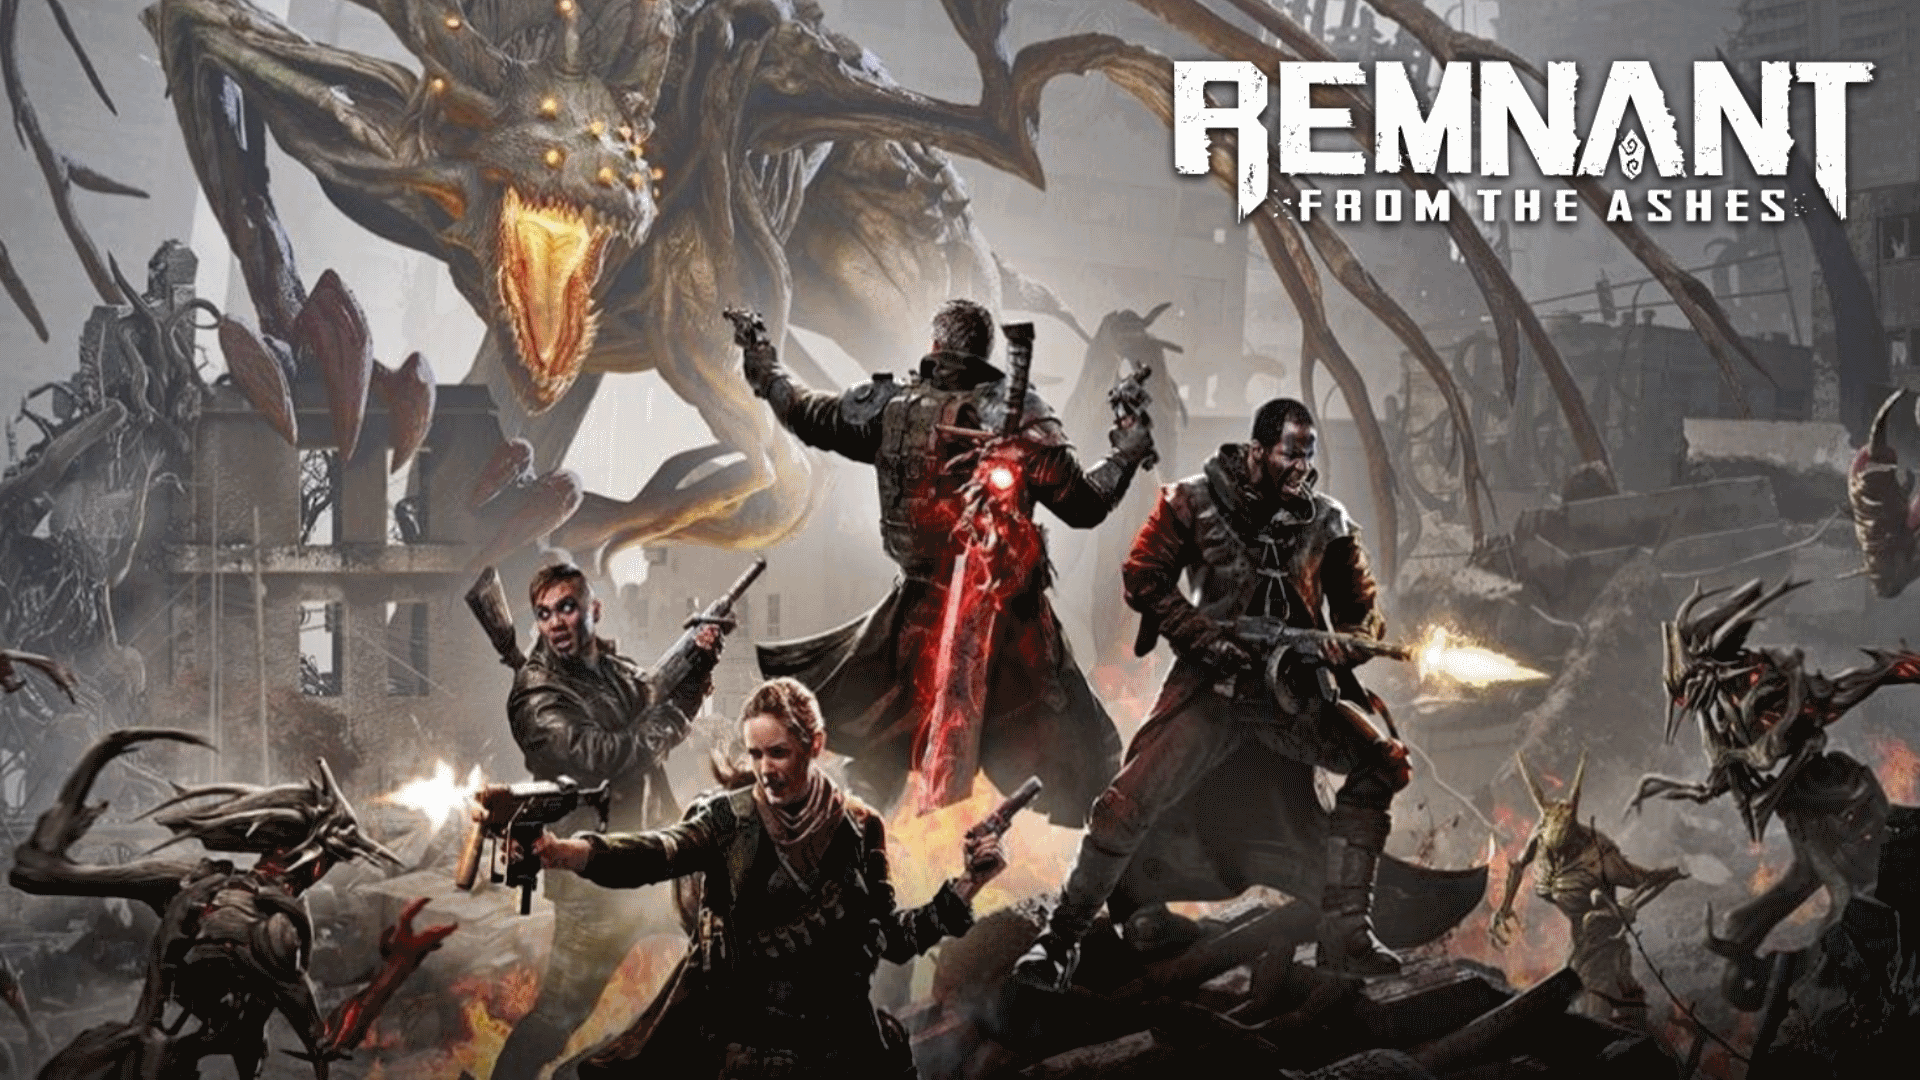 Remnant From The Ashes Wallpapers Wallpaper Cave